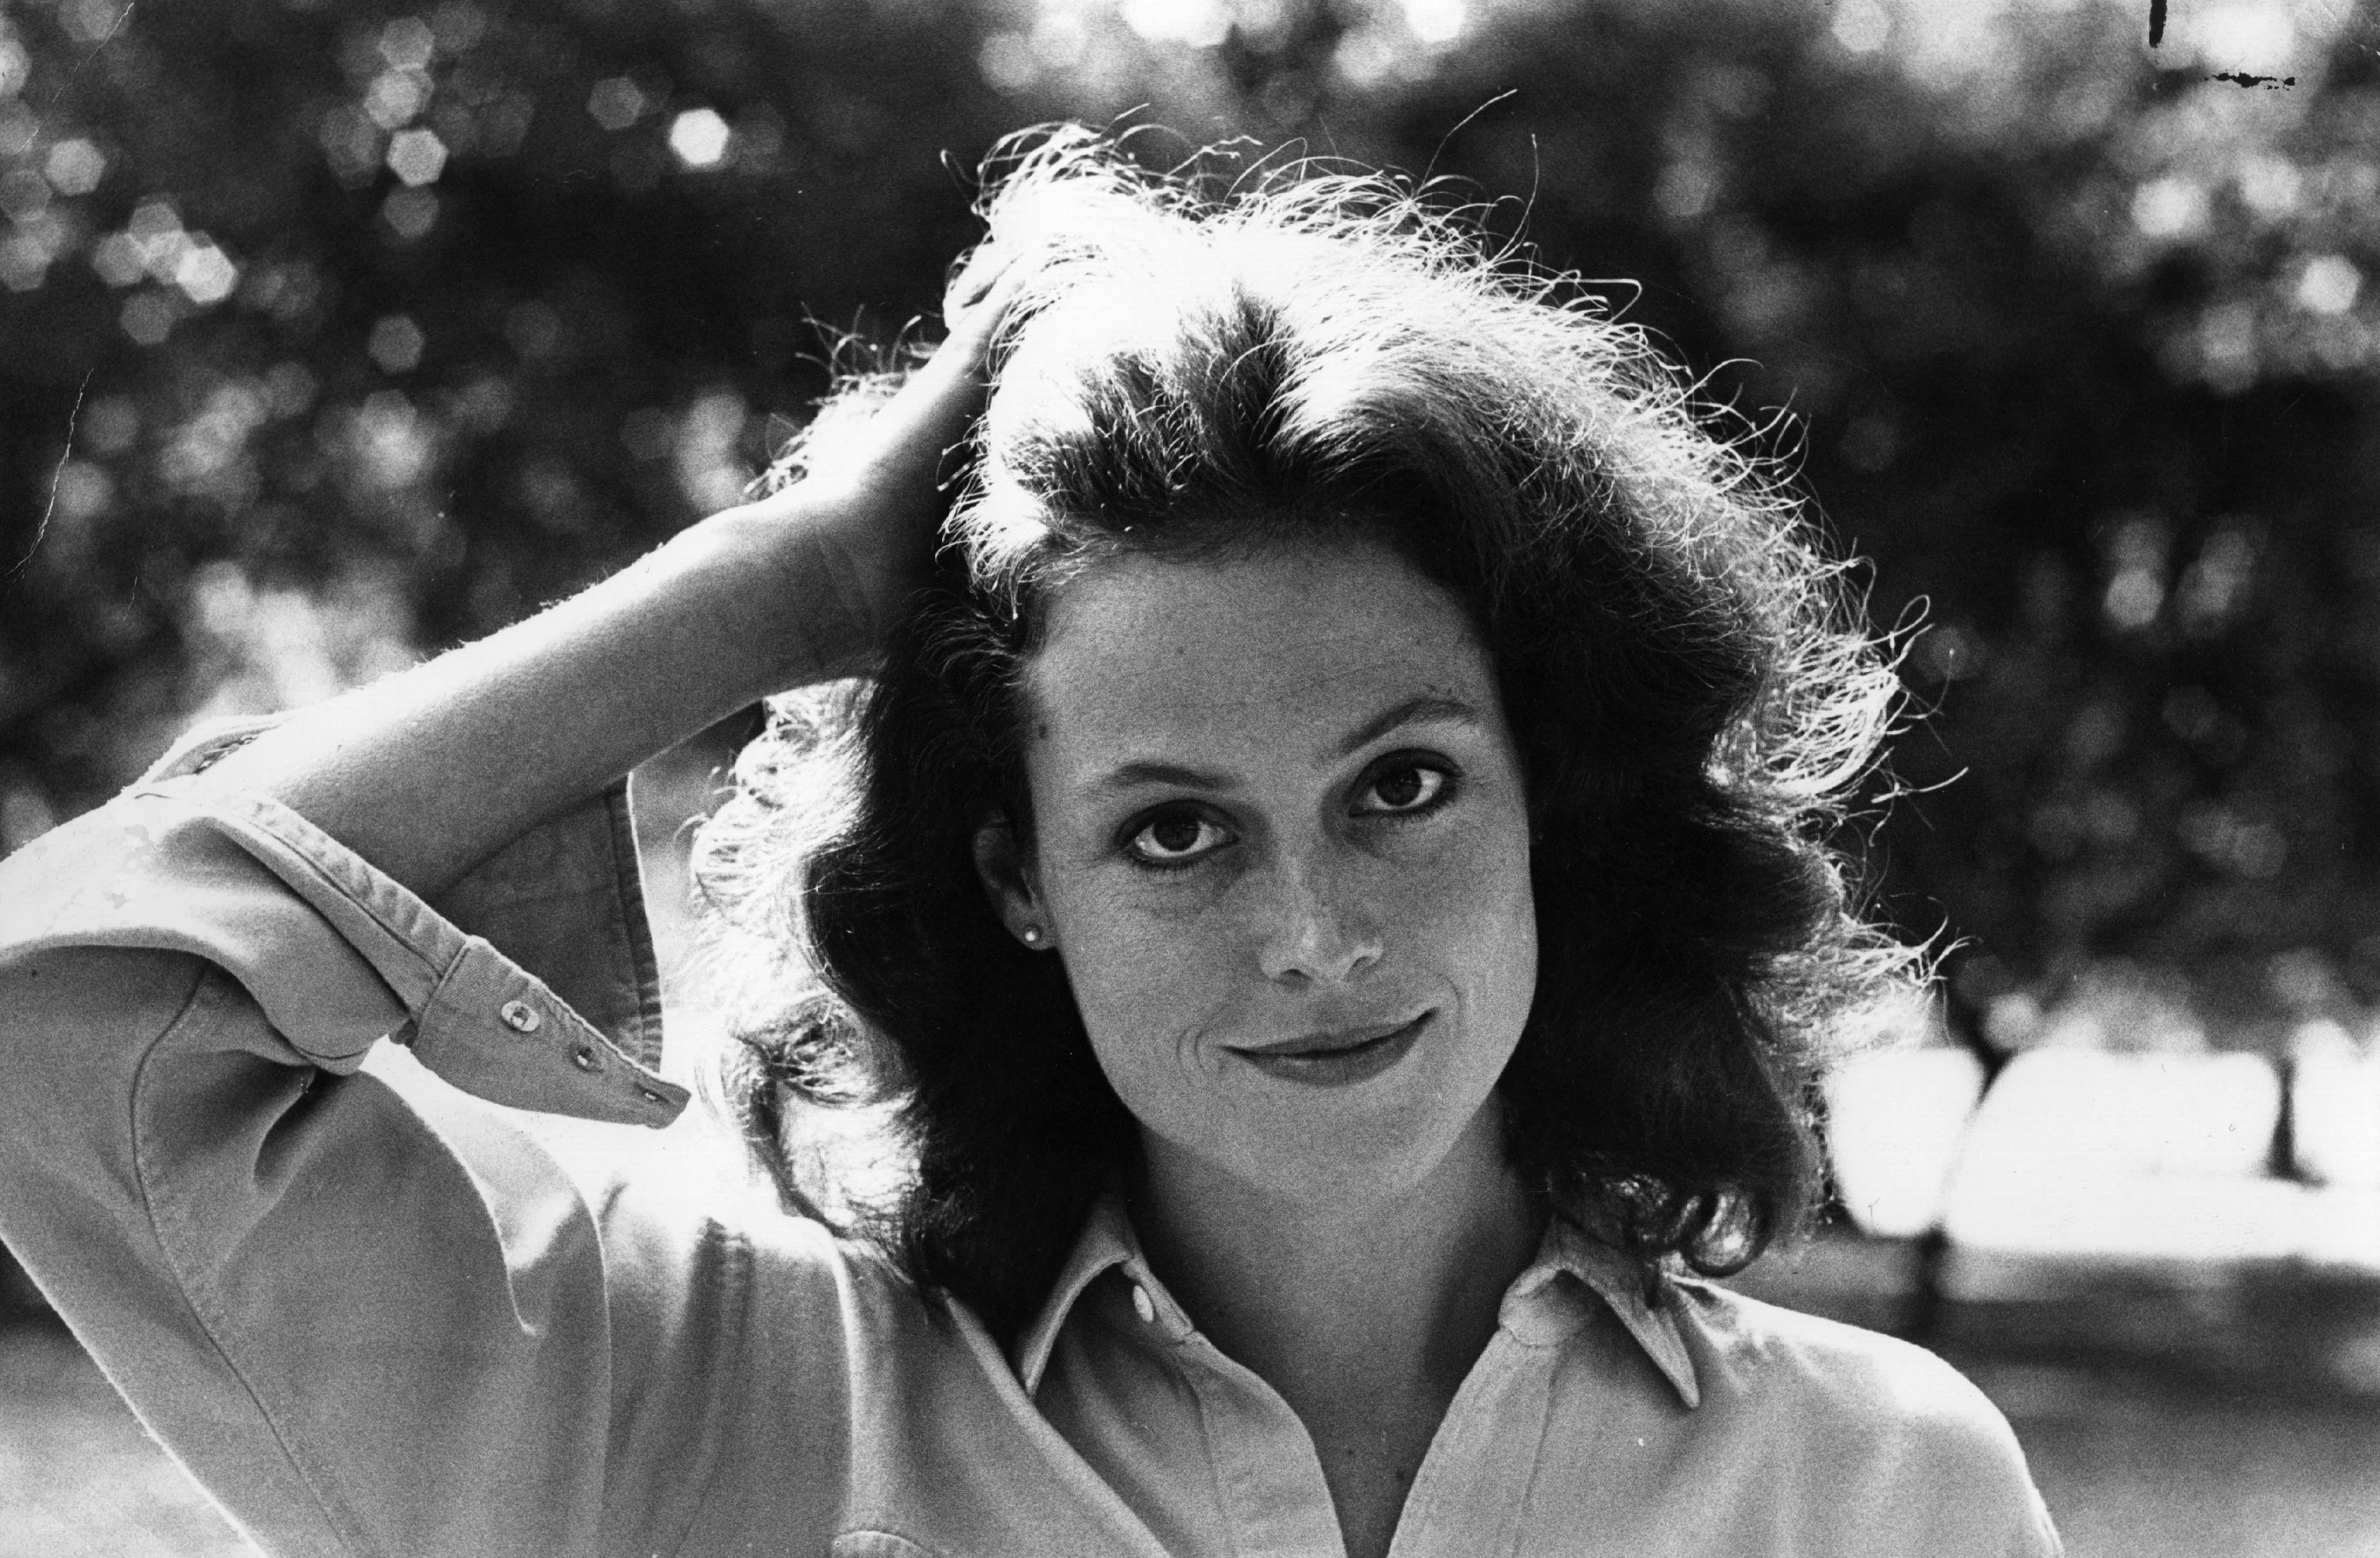 Bikini Sigourney Weaver nudes (92 foto and video), Tits, Paparazzi, Selfie, cleavage 2018